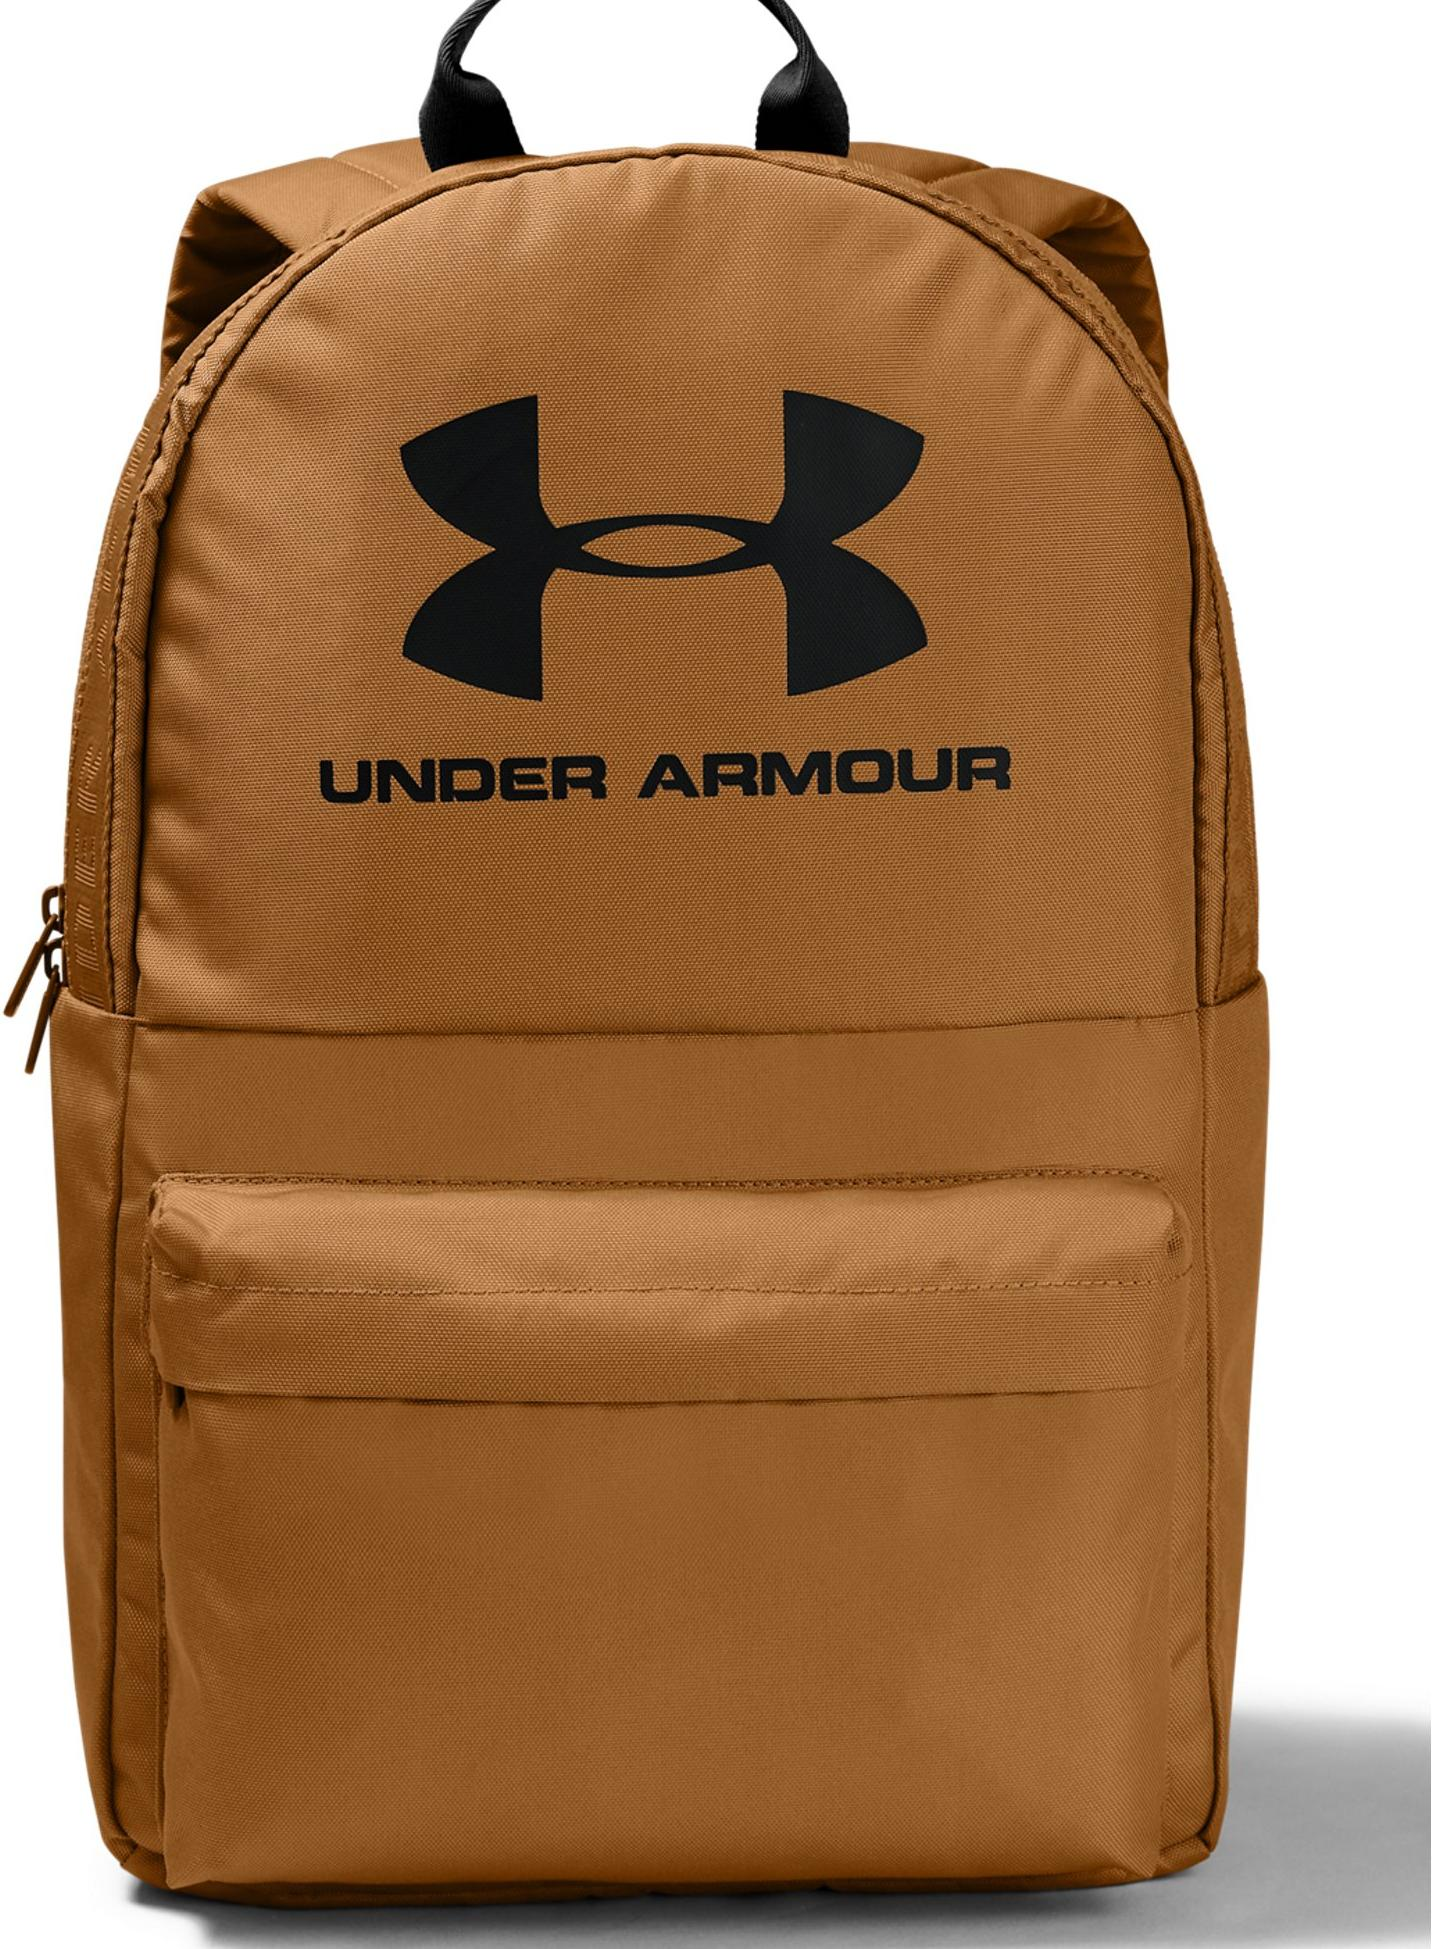 Batoh Under Armour Under Armour Loudon Backpack